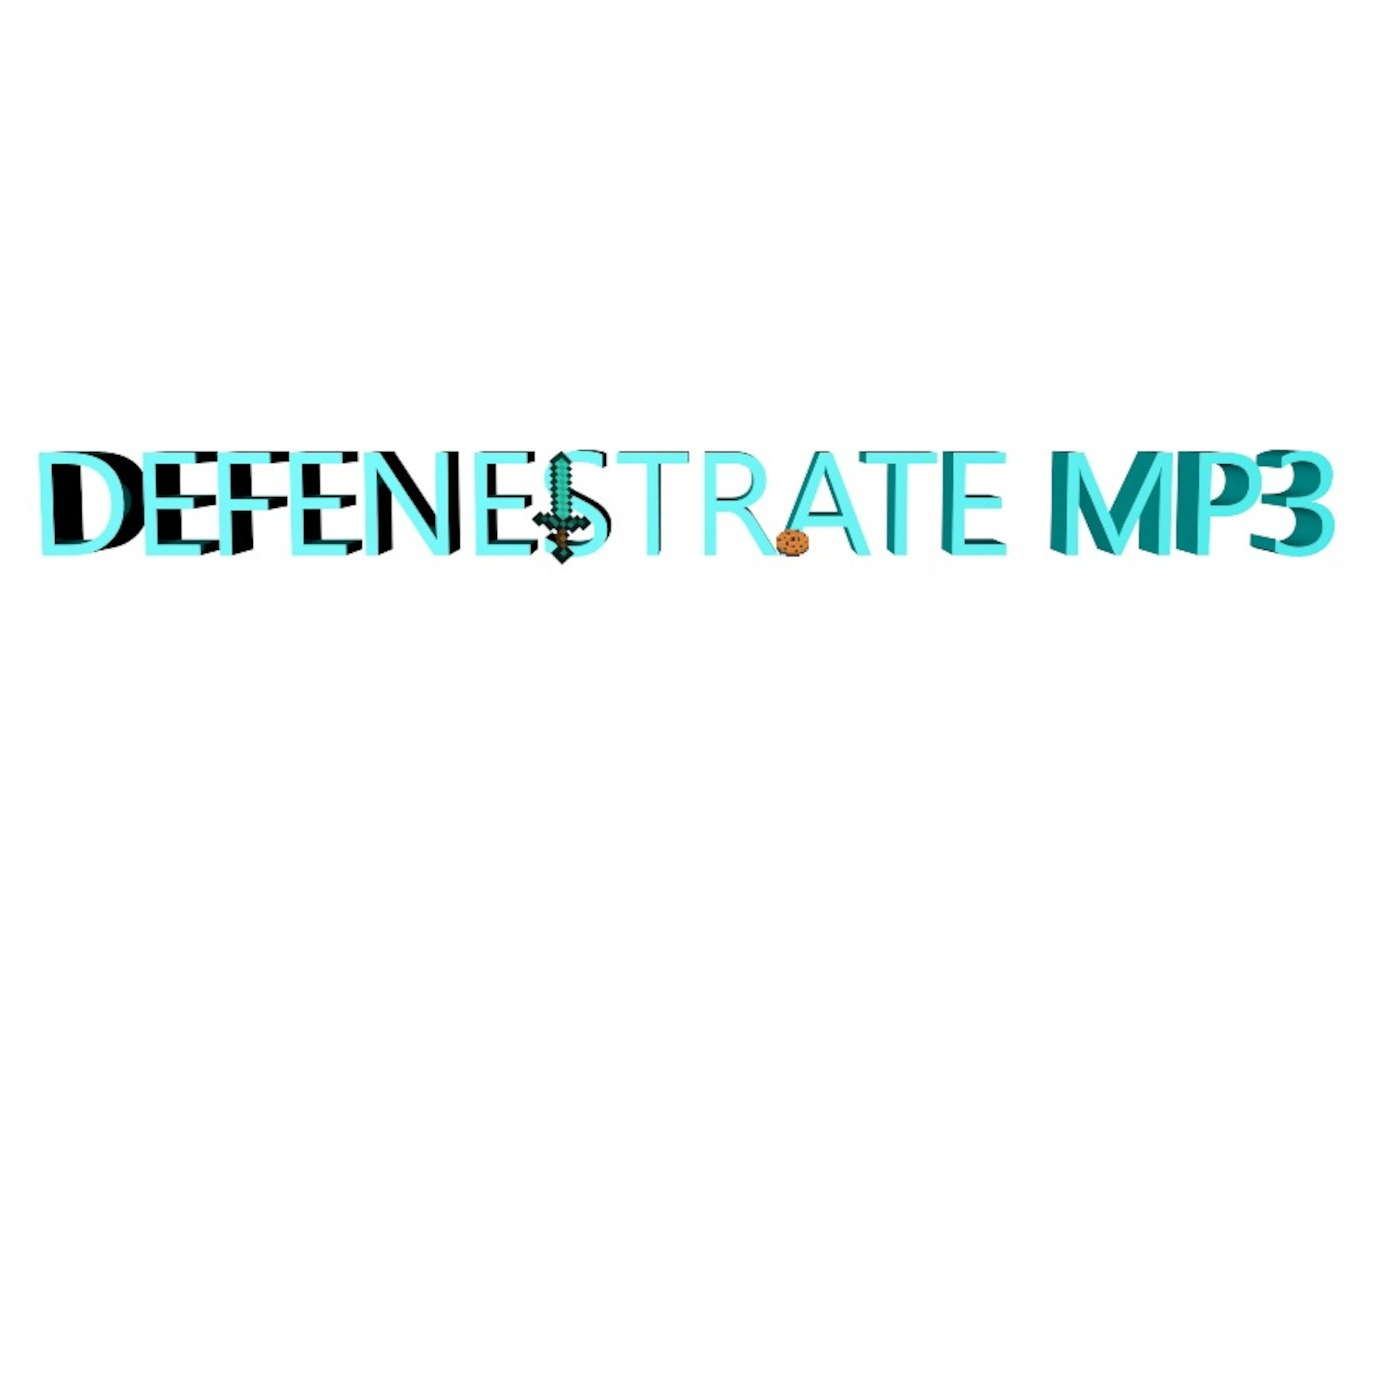 DEFENESTRATE MP3